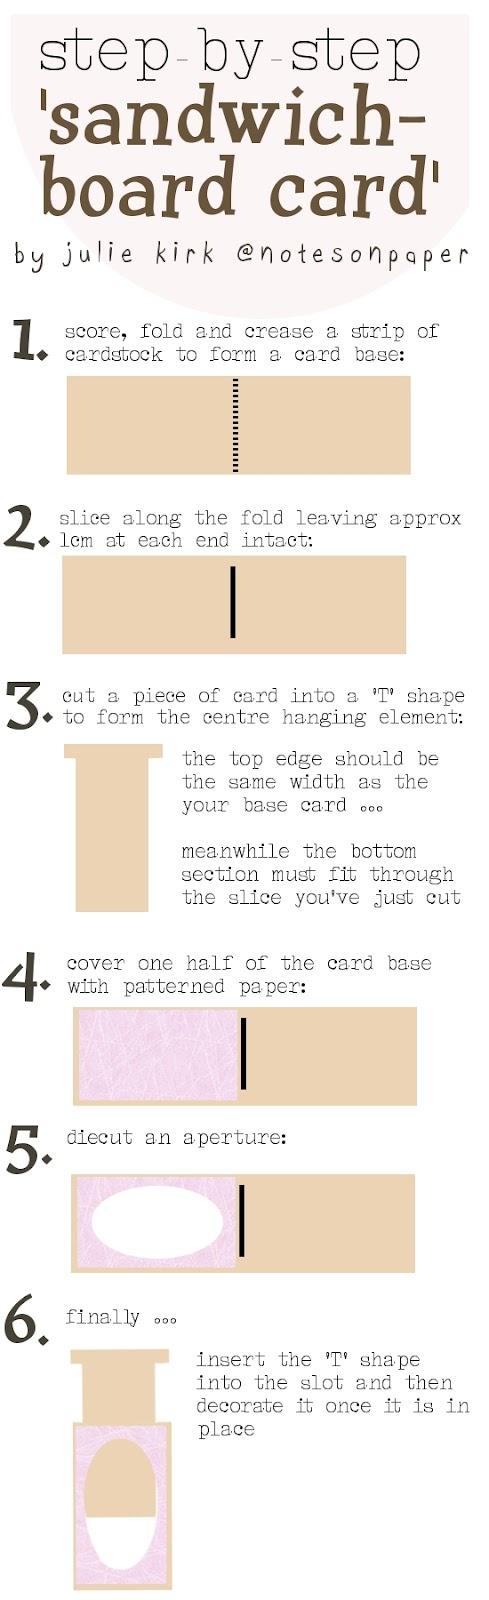 how to make a folded card in word